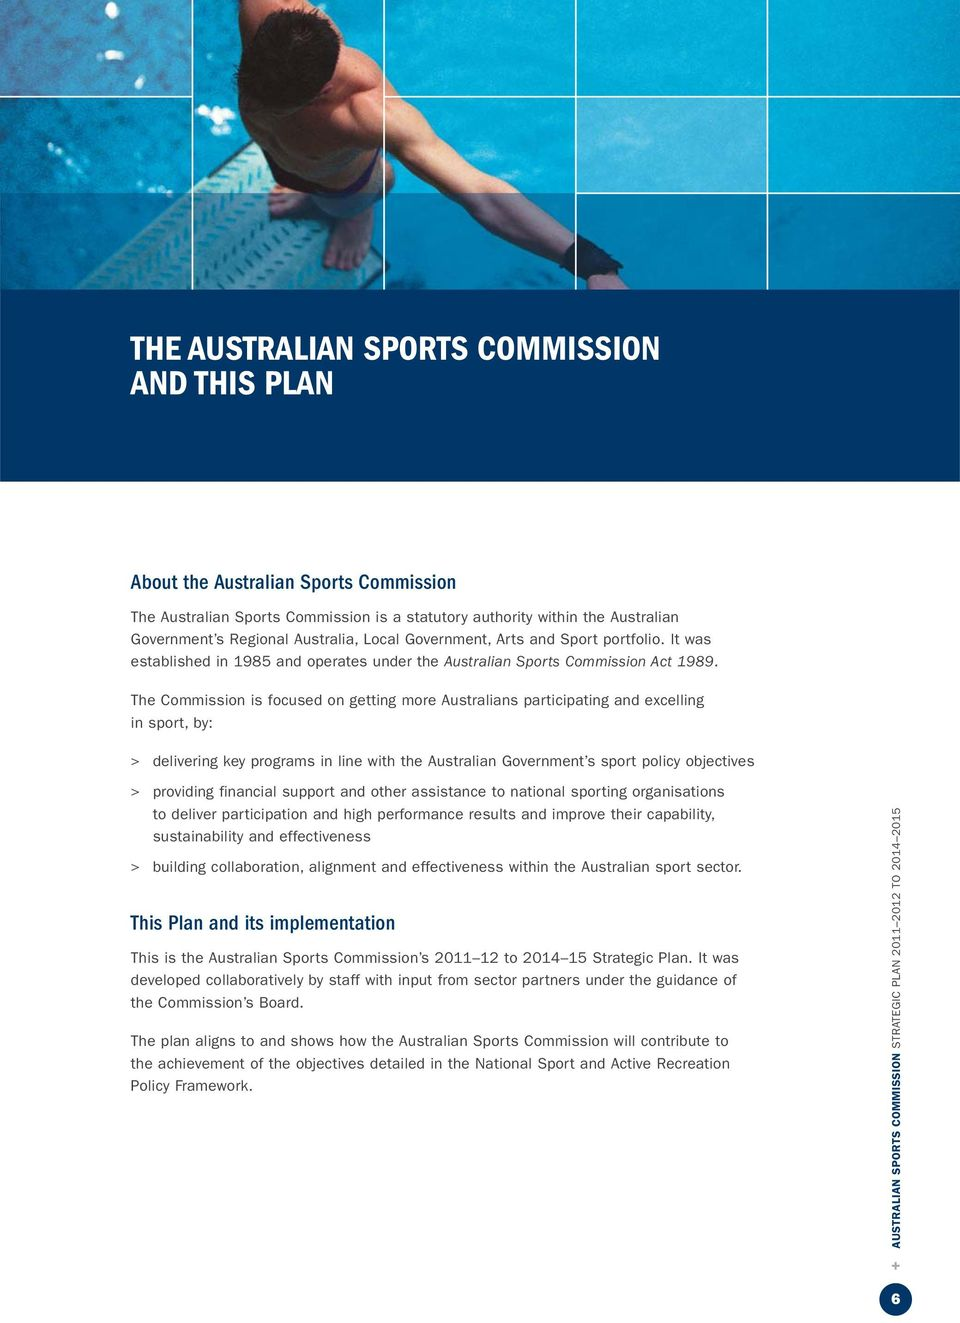 The Commission is focused on getting more Australians participating and excelling in sport, by: > delivering key programs in line with the Australian Government s sport policy objectives > providing